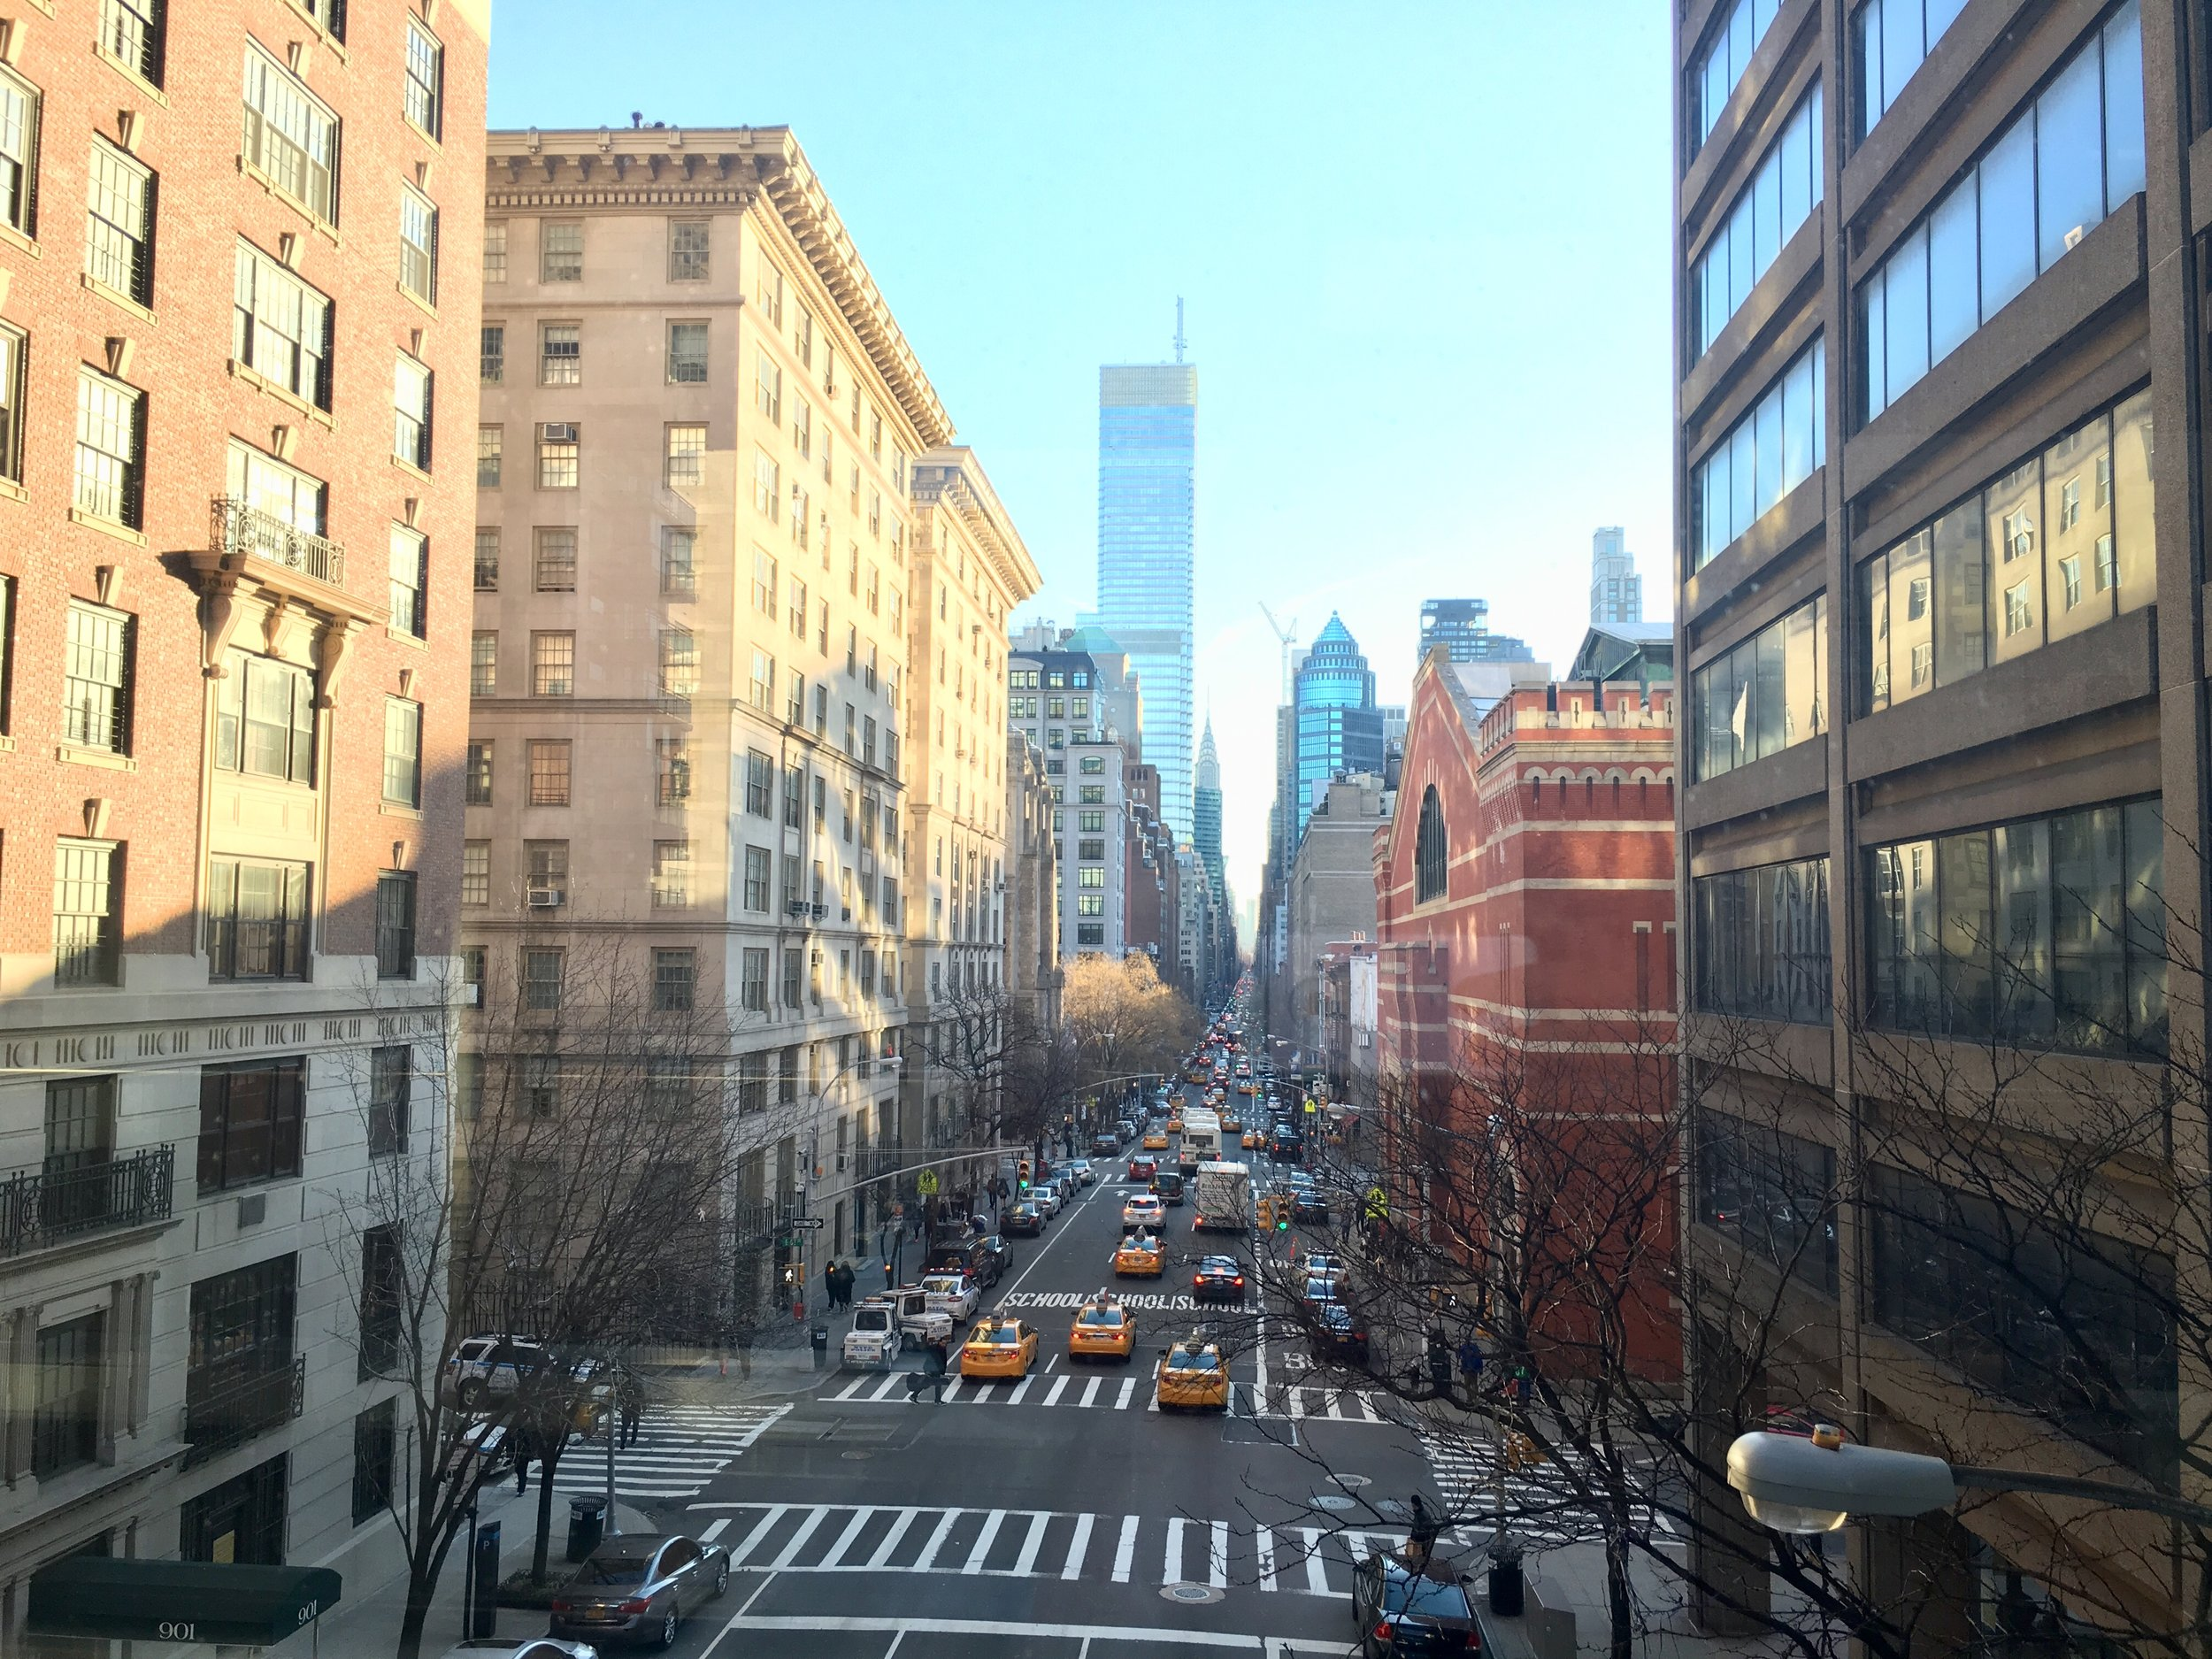 This is the view from my college looking down Lexington Avenue, Upper East Side.